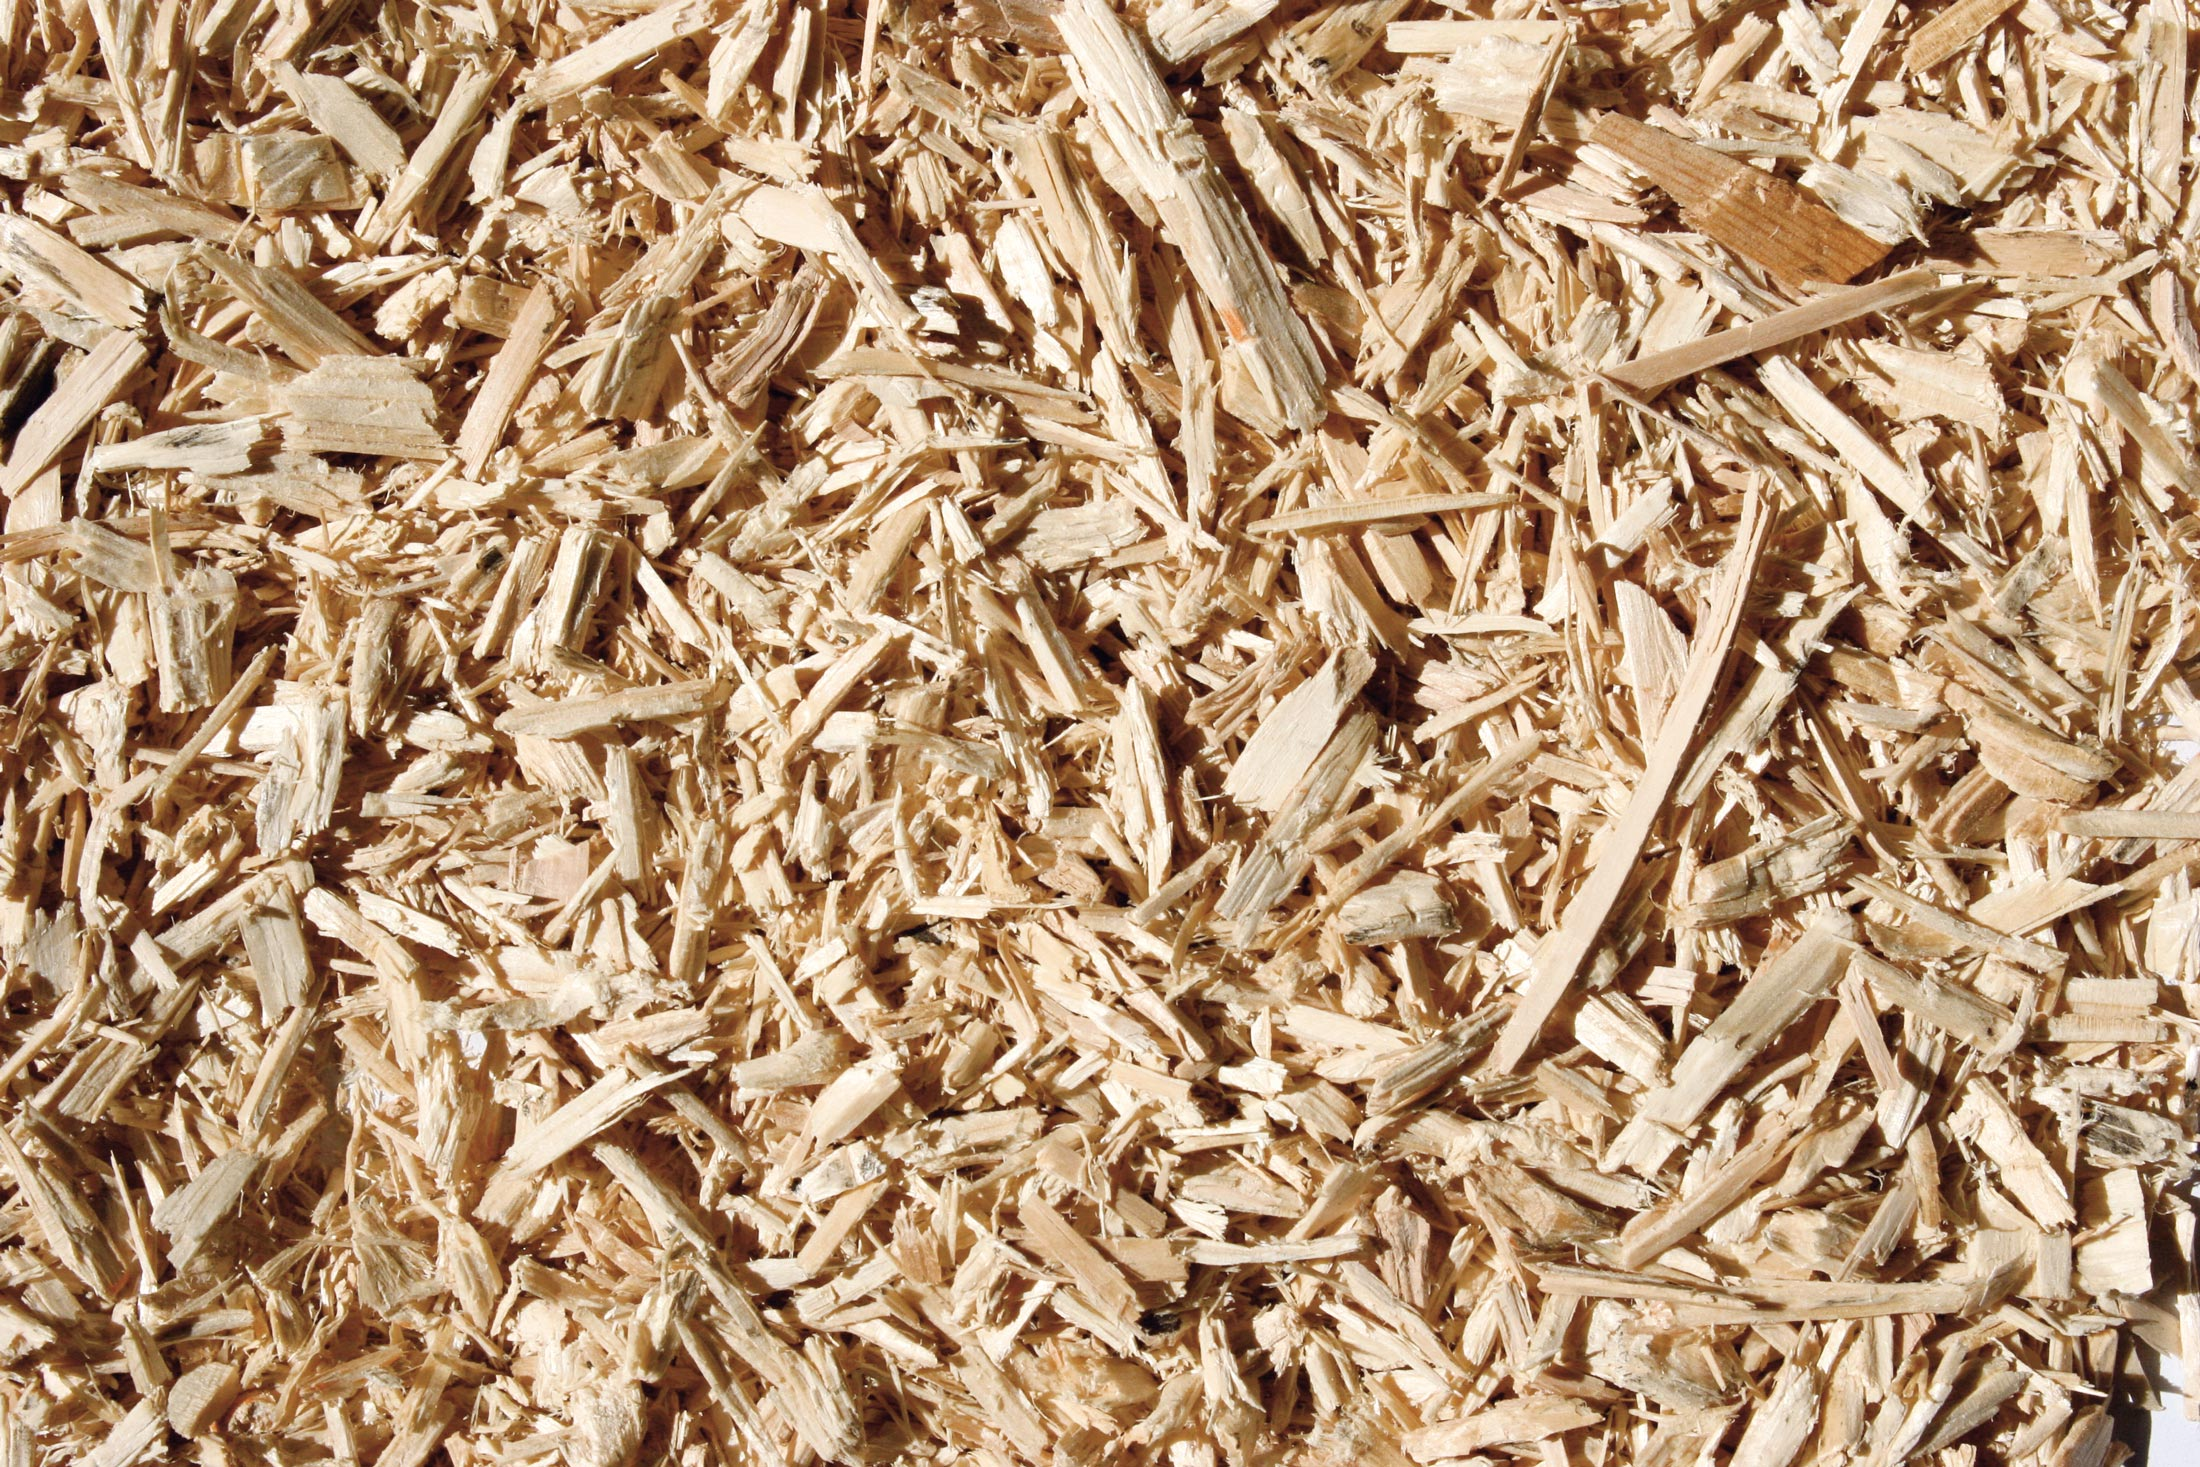 Wood chips before briquetting